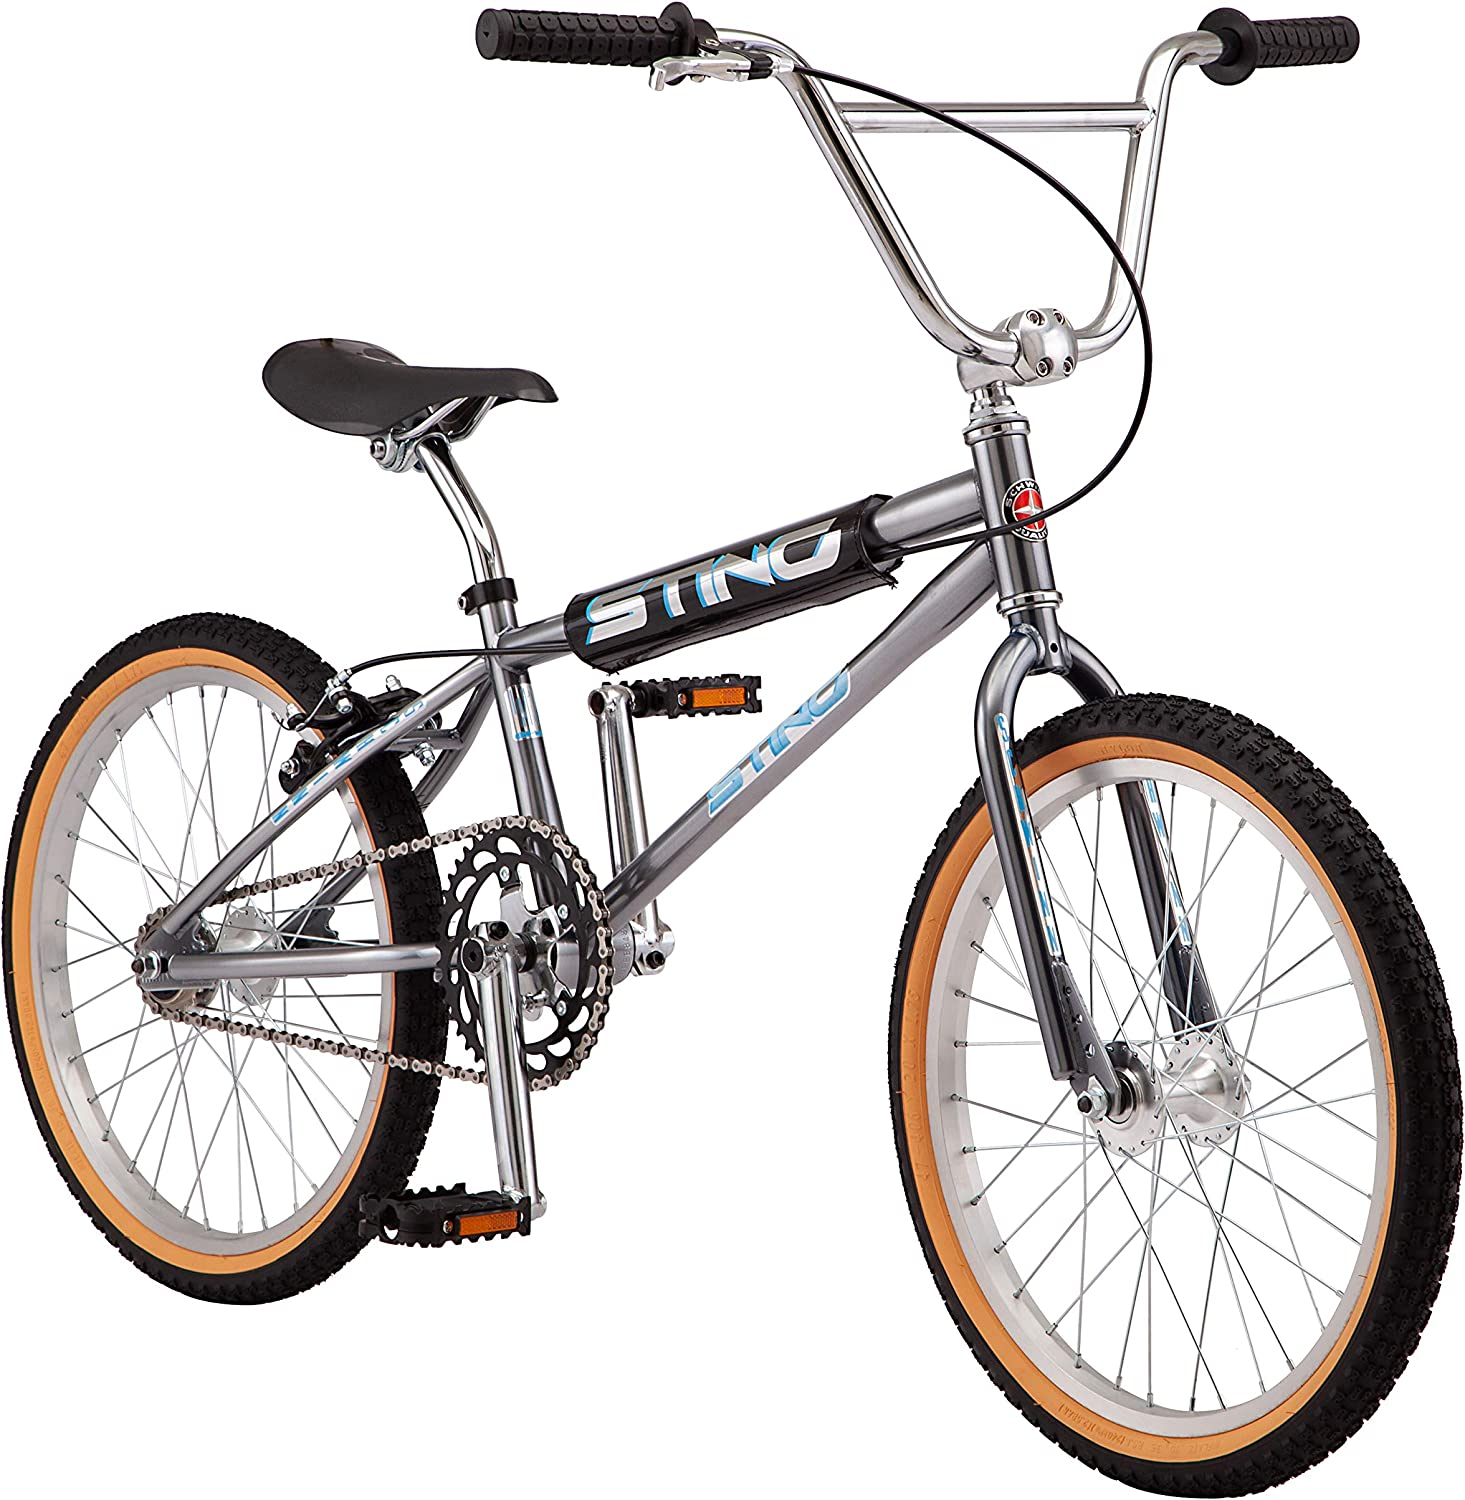 Schwinn Sting Pro BMX Hi-Ten Steel Frame Bike